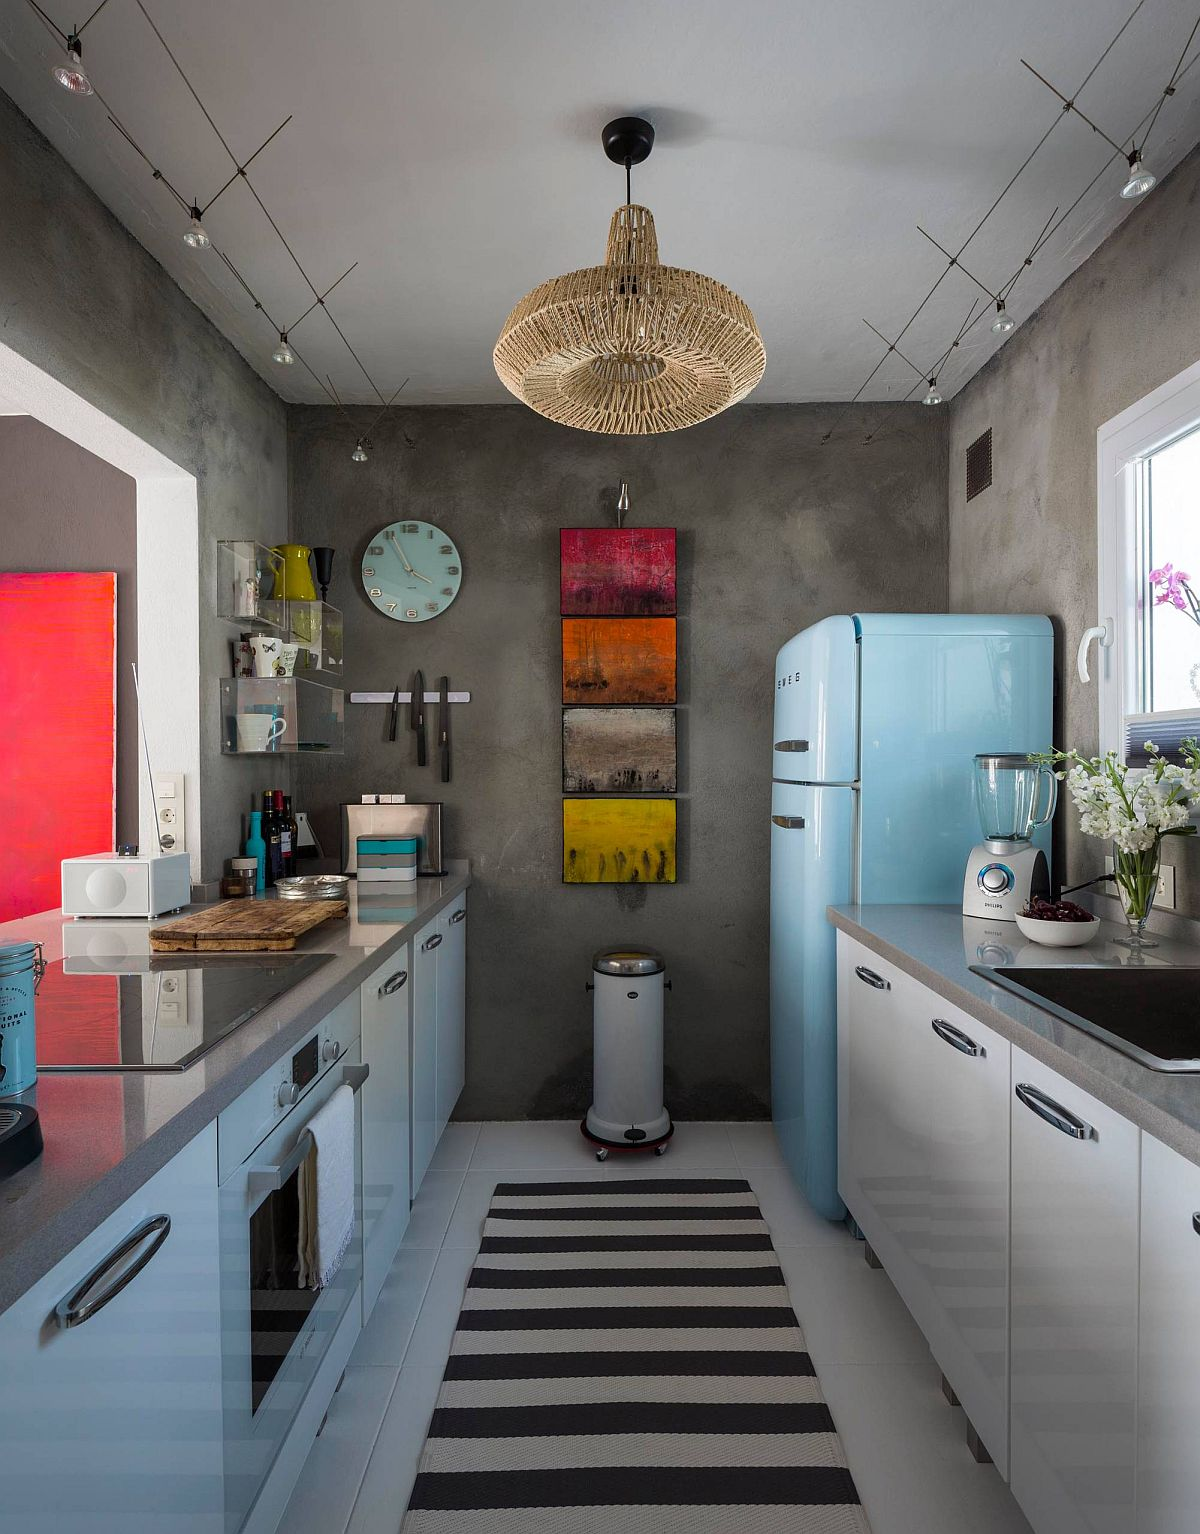 Using-vintage-fridge-to-add-color-to-the-small-eclectic-kitchen-with-concrete-walls-42790